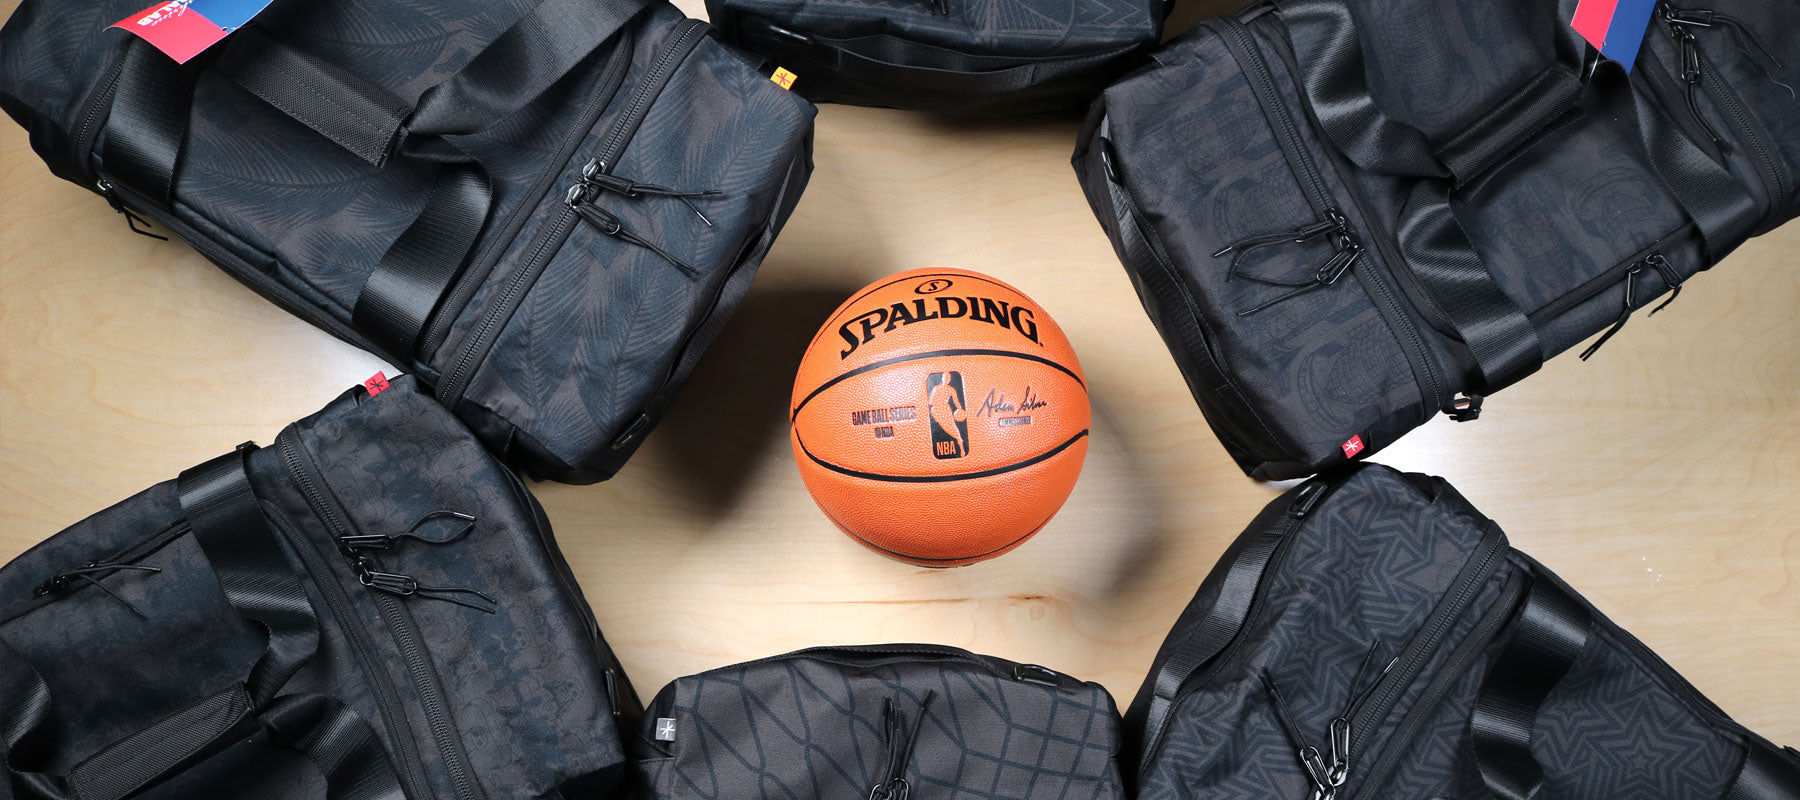 NBALAB x The Shrine Sneaker Duffle Bag Collab dropping